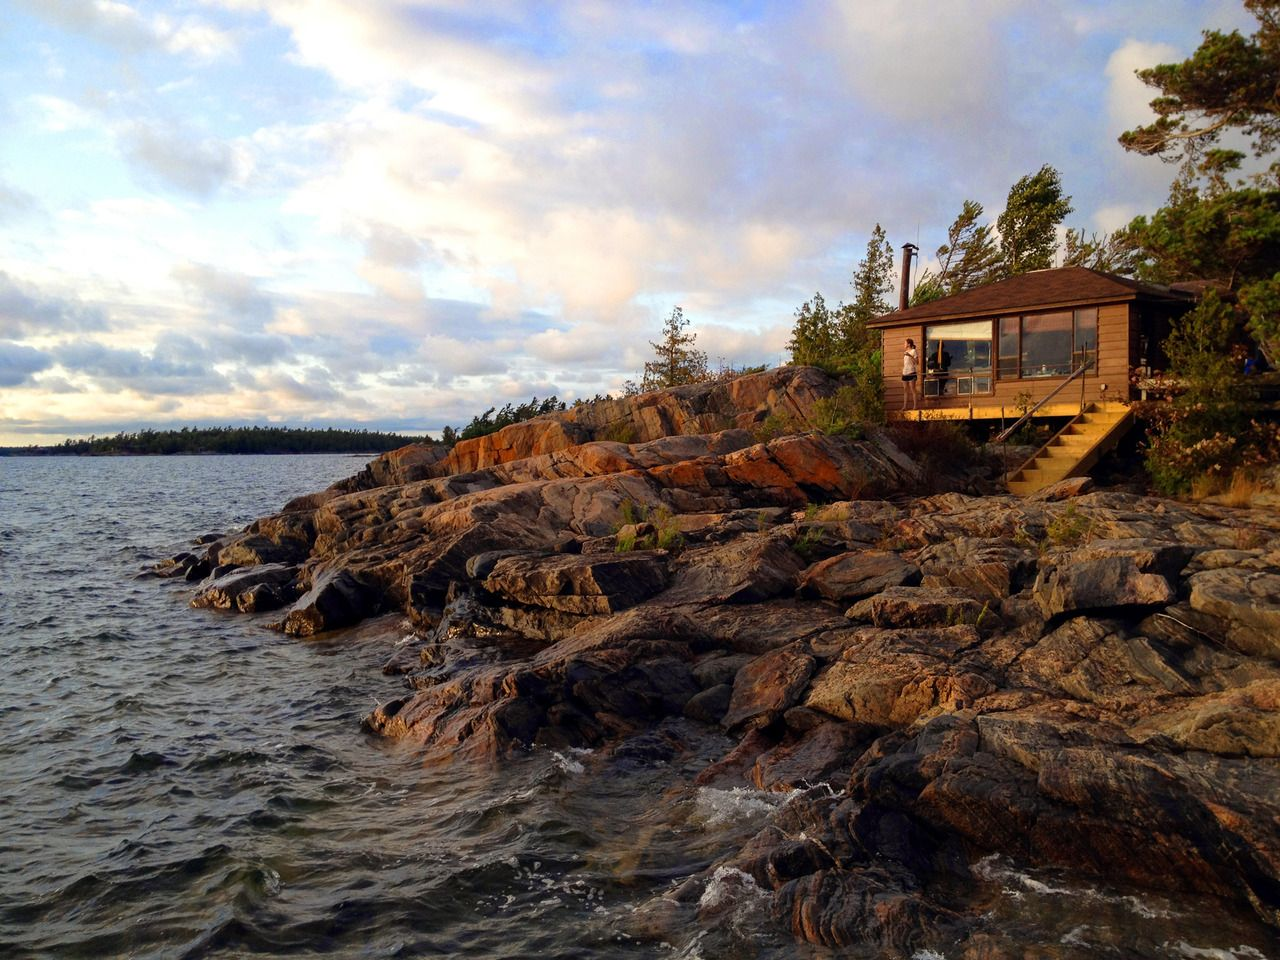 island cabin on georgian bay, ontario, canada, from submitter